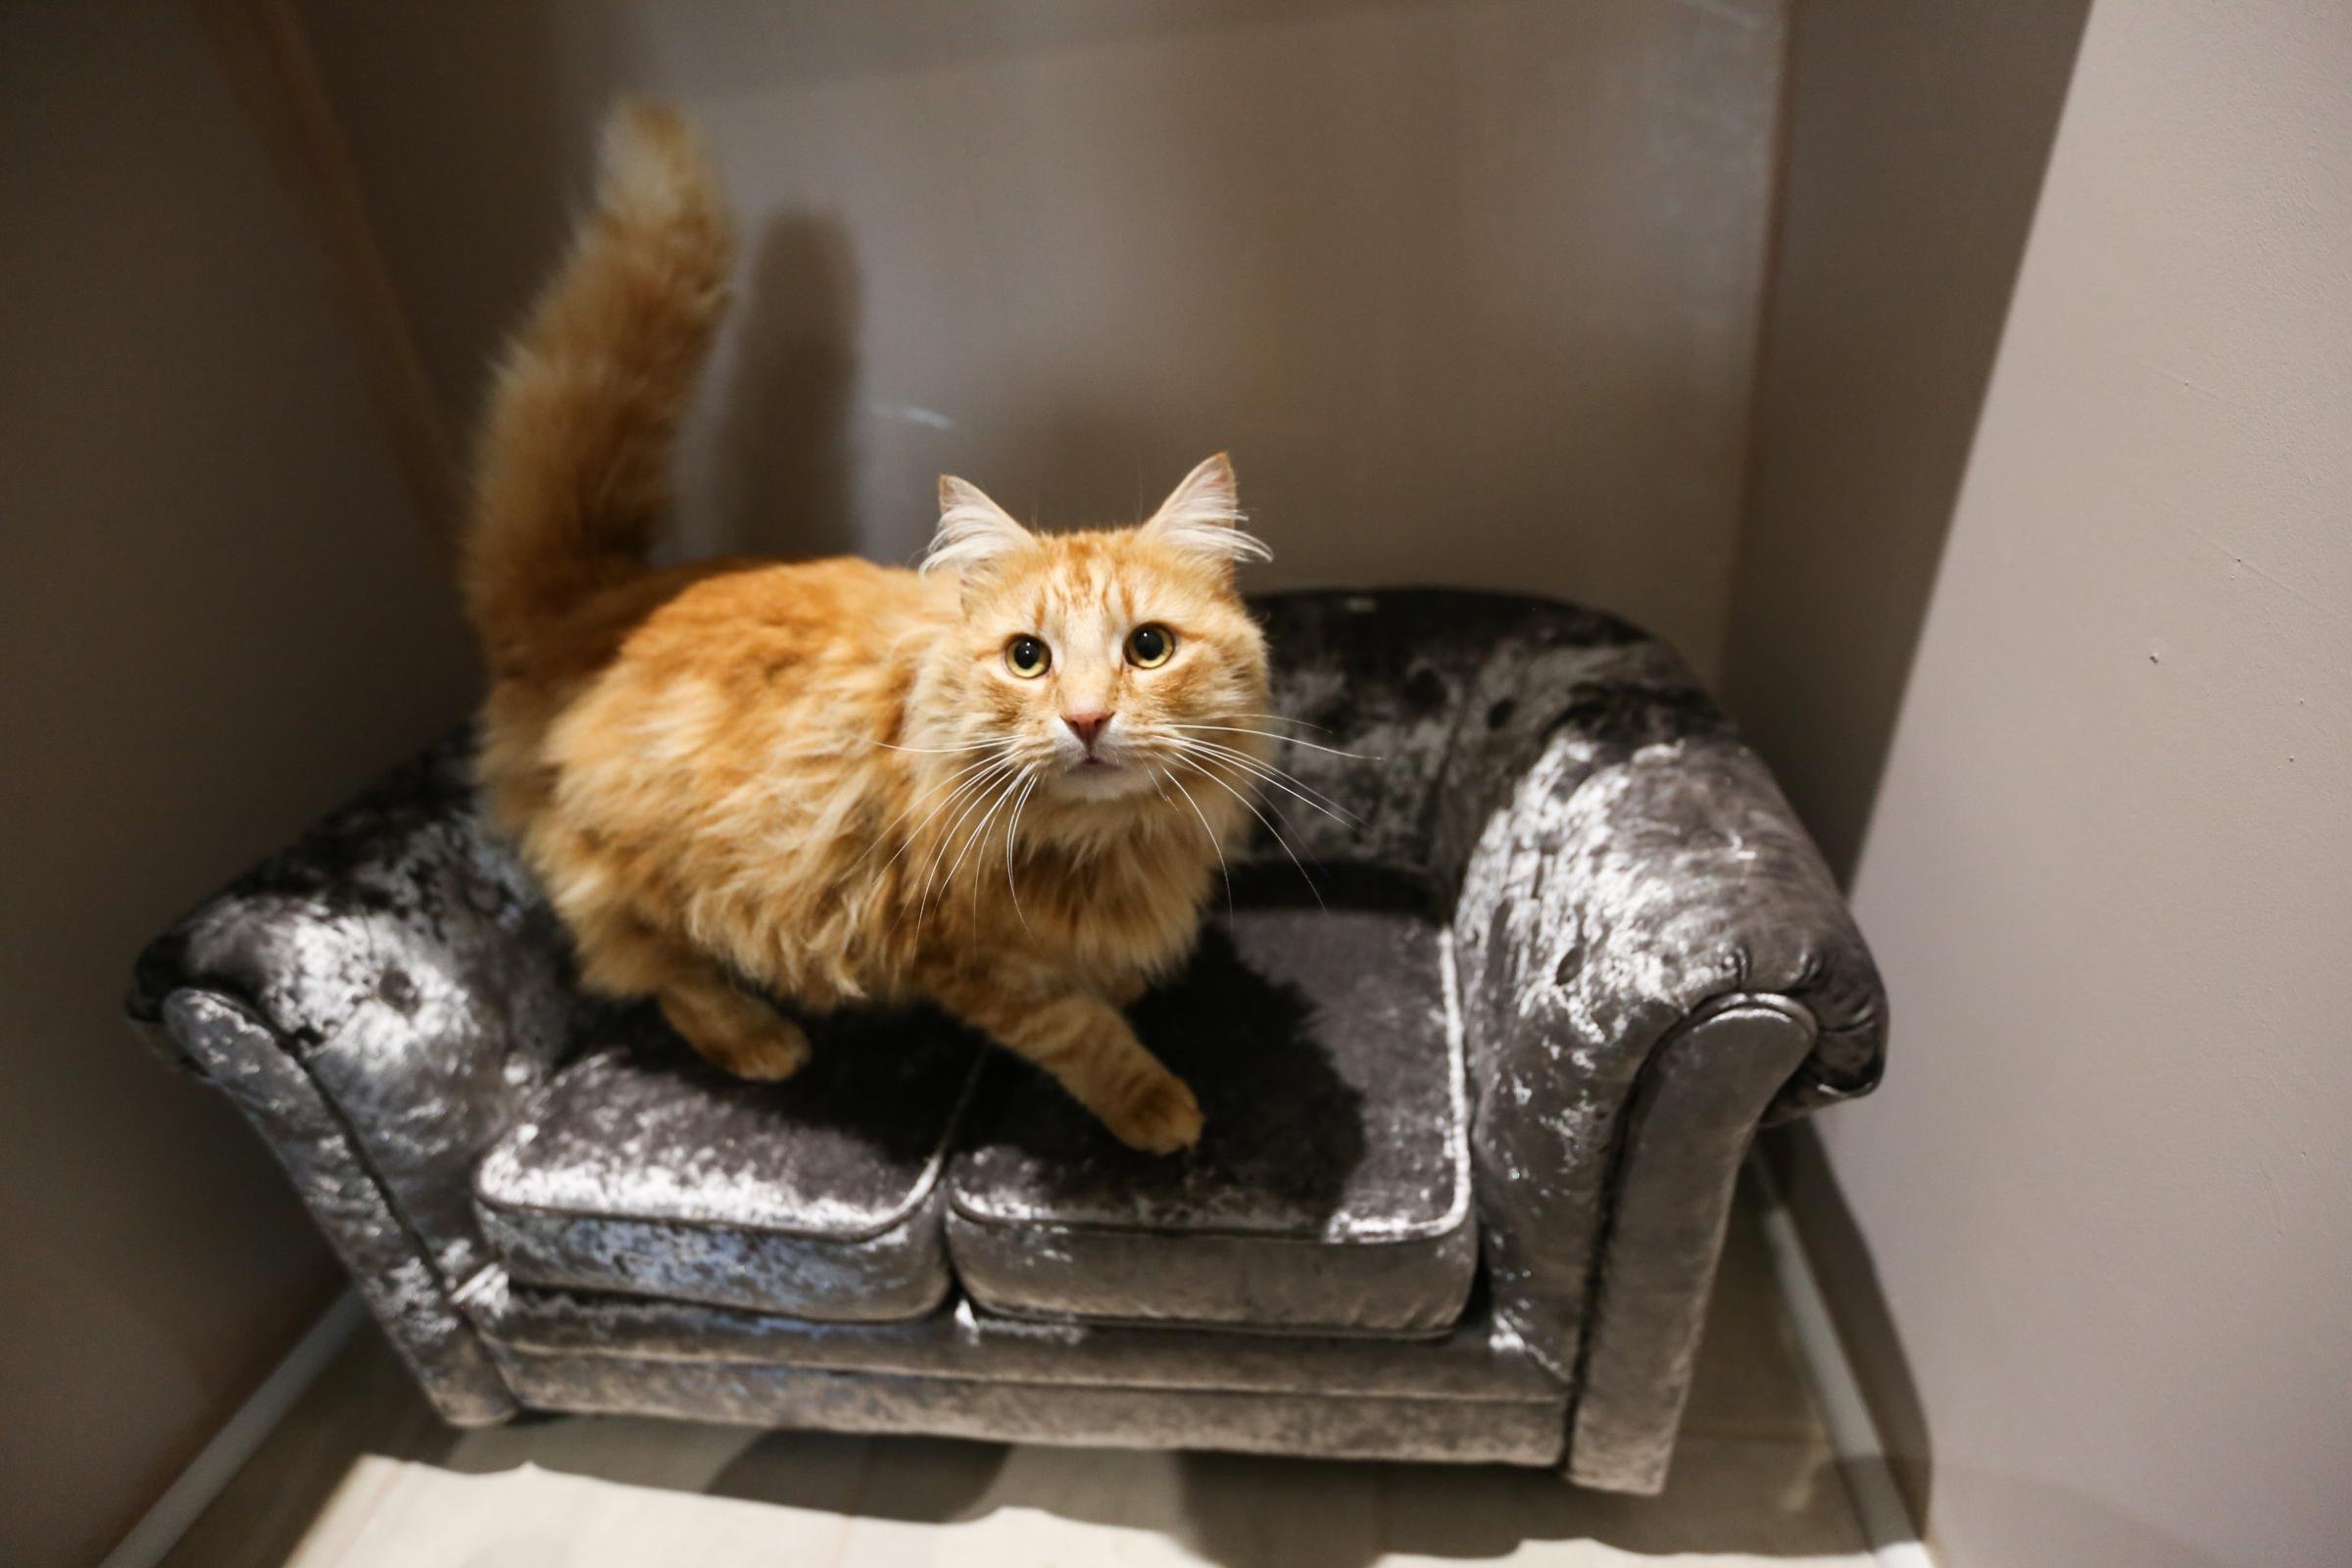 The Pet Place in Bylchau is opening a five star hotel for cats. Pic: Each cat has a bed and a luxury couch. GA100418C.